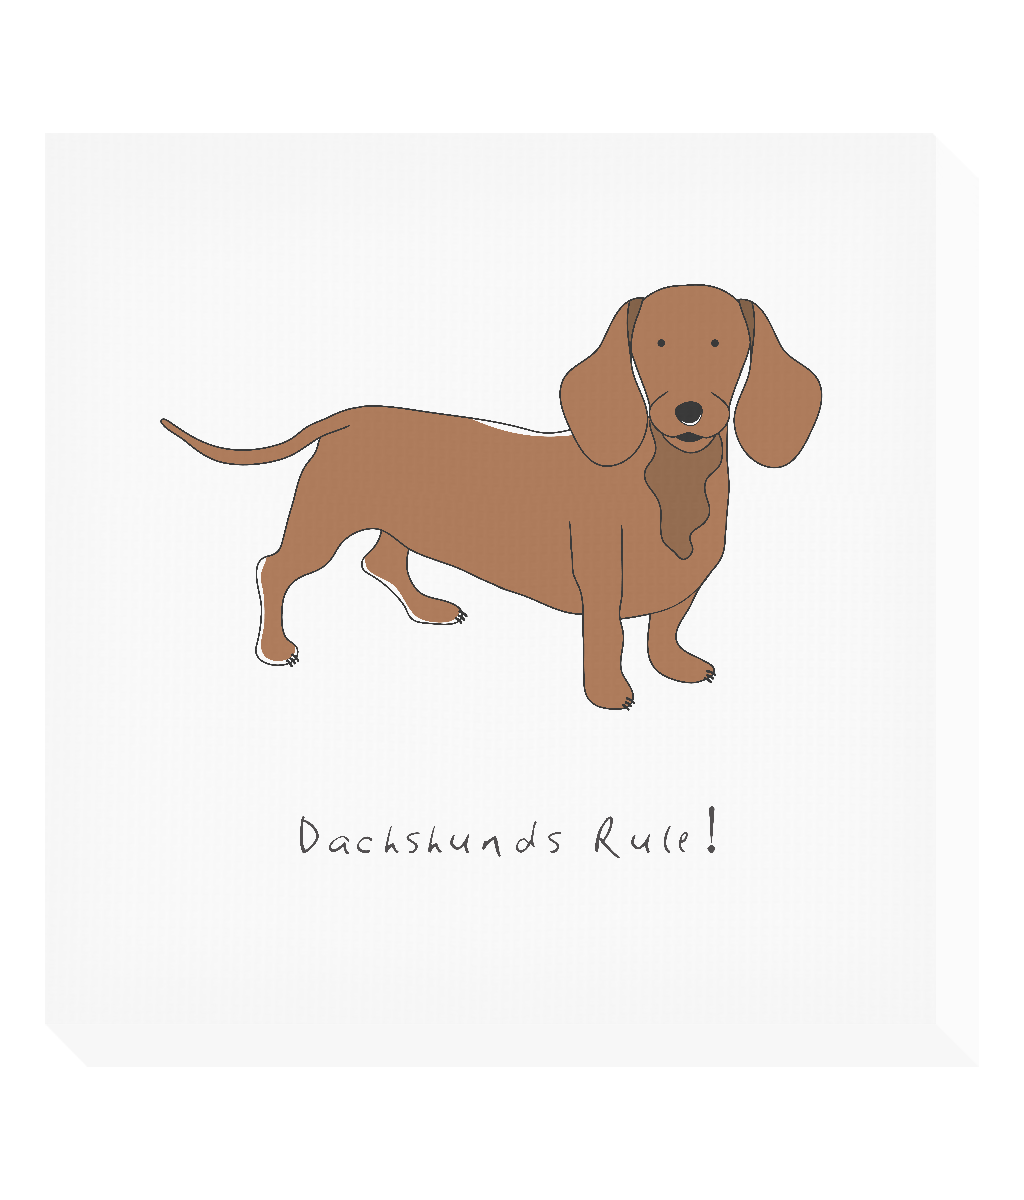 Square Canvas Print - Dachshunds Rule!